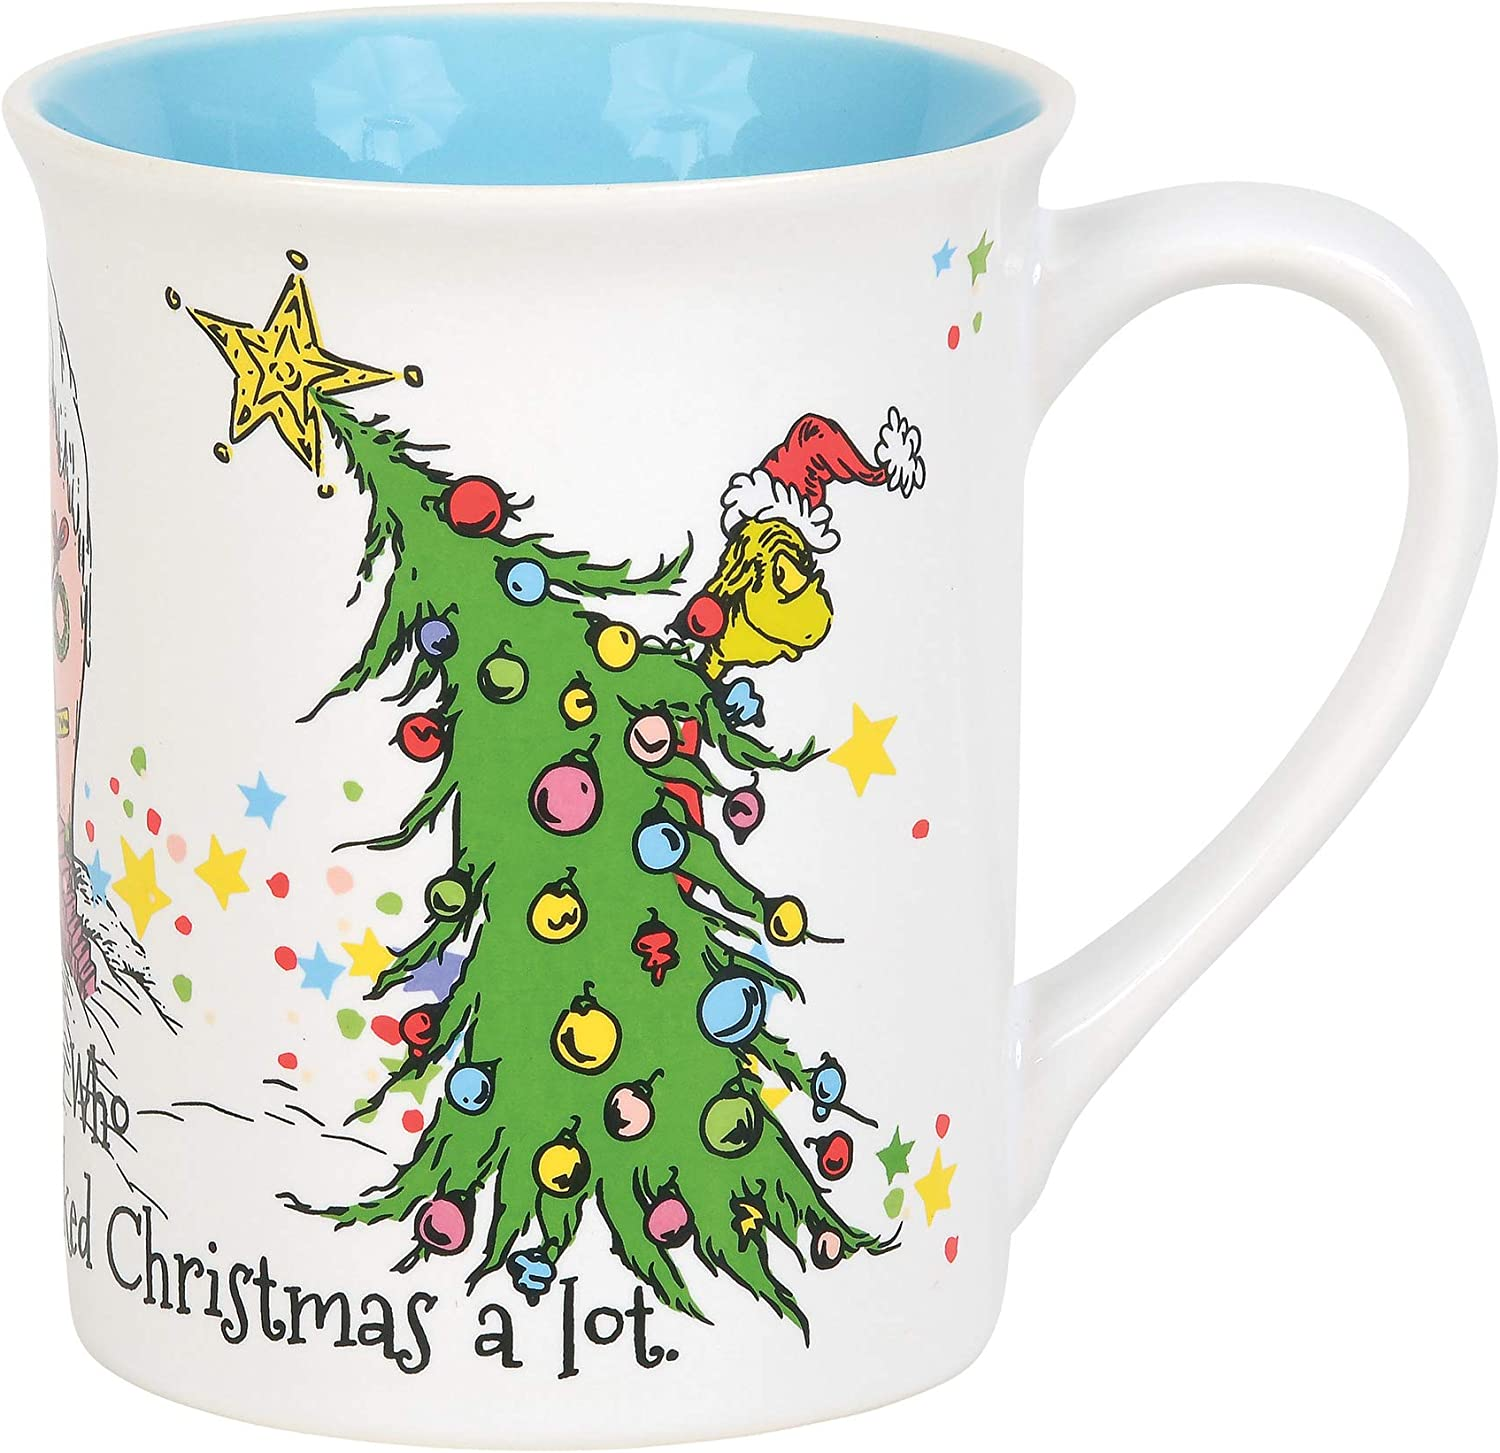 Department 56 The Grinch Cindy Lou Who Coffee Mug, 16 Ounce, Multicolor,6011014